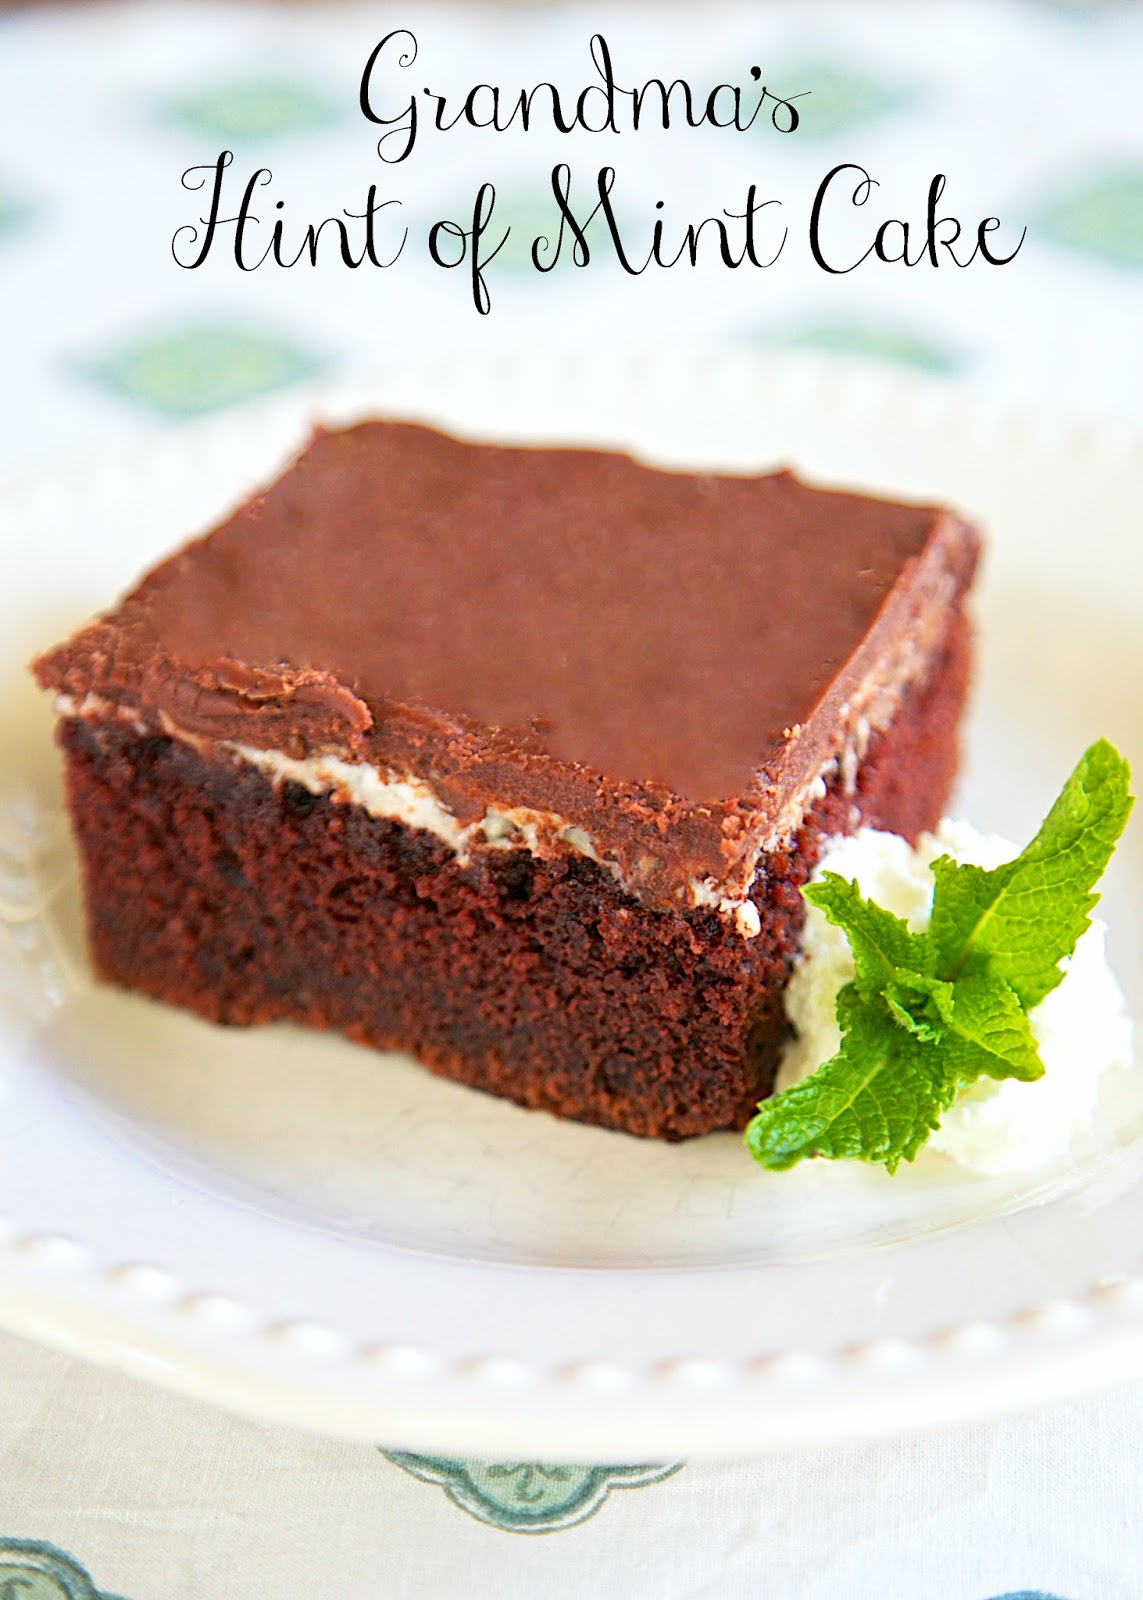 Grandma's Hint of Mint Cake Recipe - quick homemade chocolate cake, topped with Peppermint Patties and a homemade chocolate frosting. Great for a potluck dinner - super easy to transport. We like it with a scoop of vanilla ice cream!